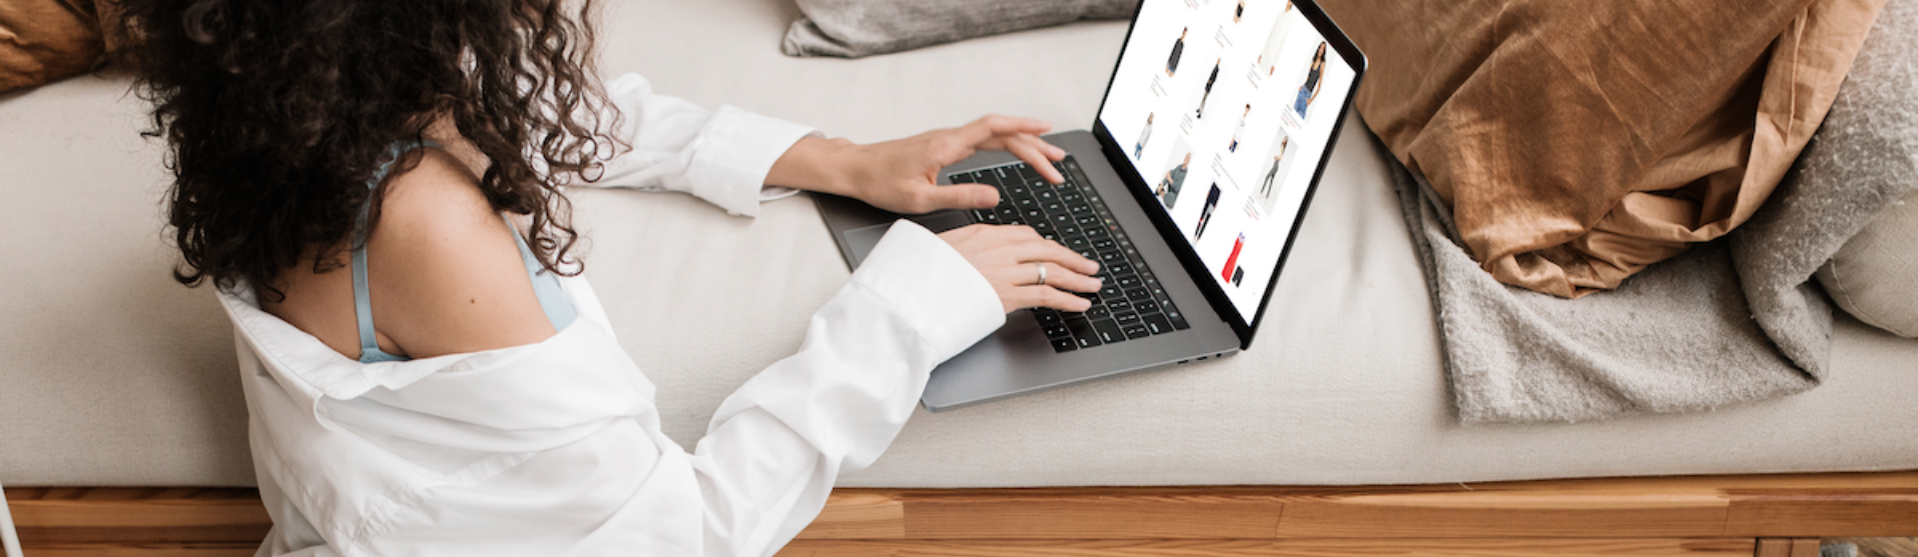 Woman shopping online with a laptop